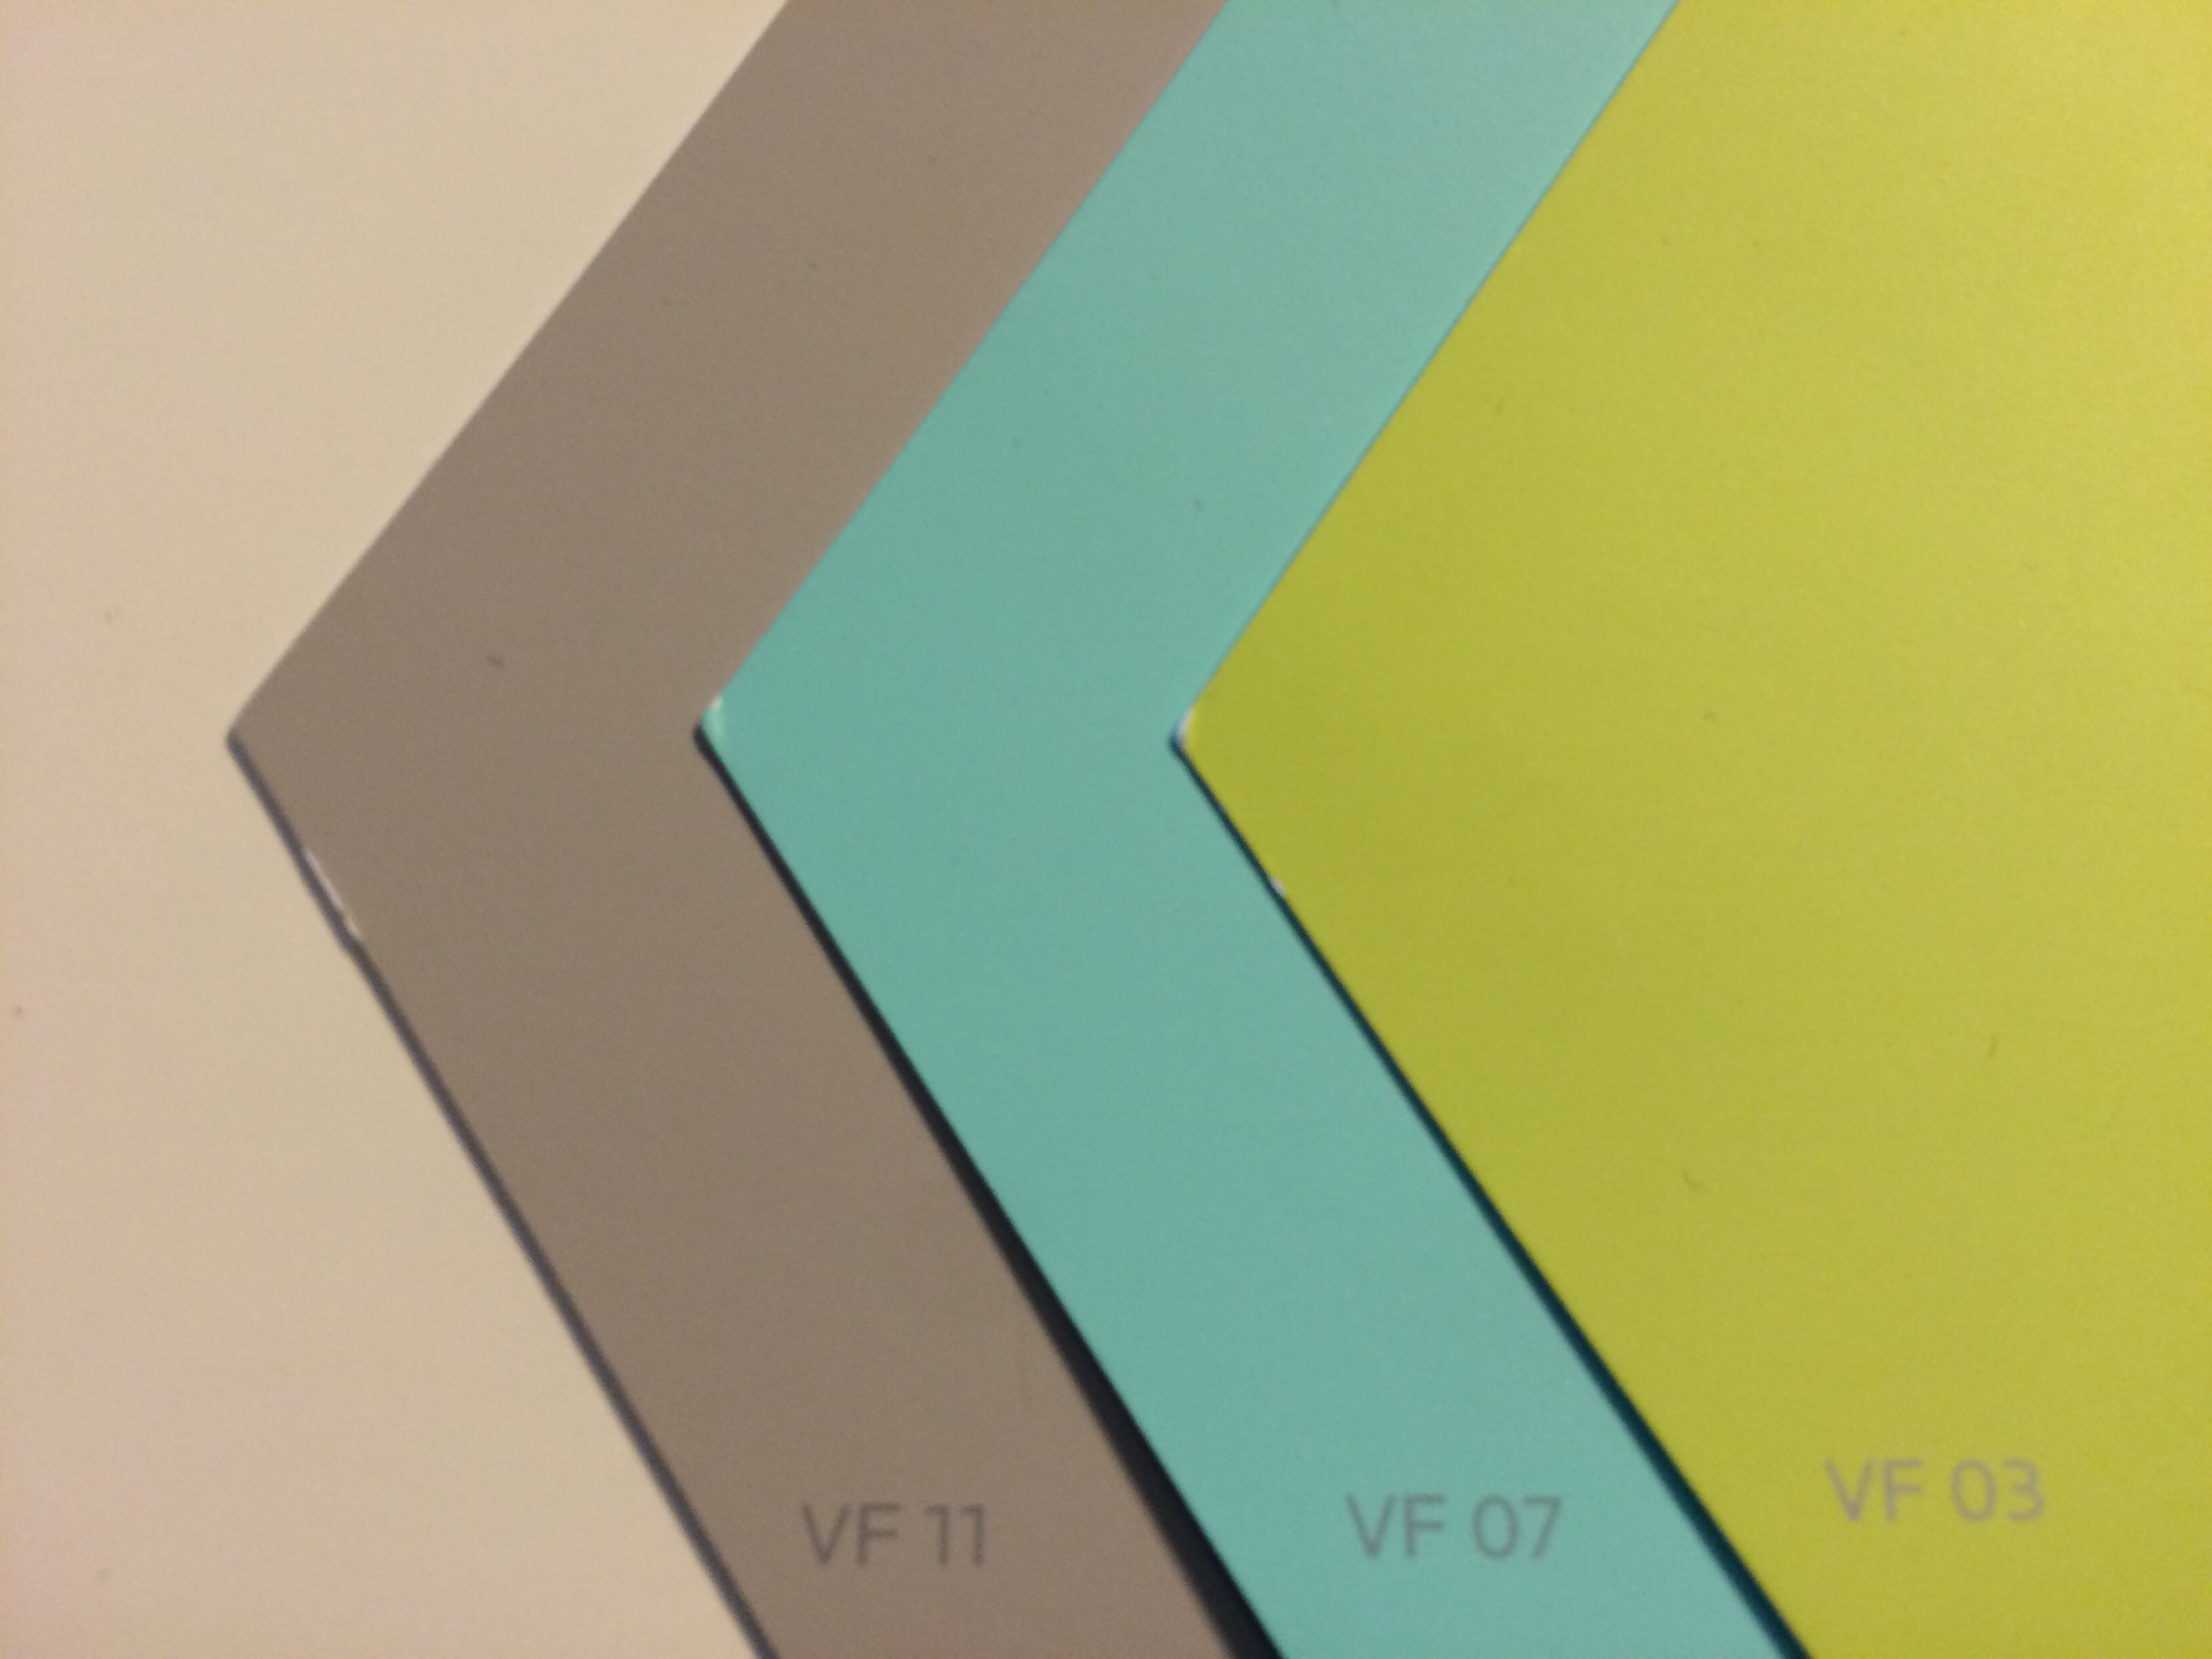 Choice cream sw6357 perfect greige sw6073 refresh sw6751 and frolic sw6703 greens and blues are both relaxing and inspire creativity